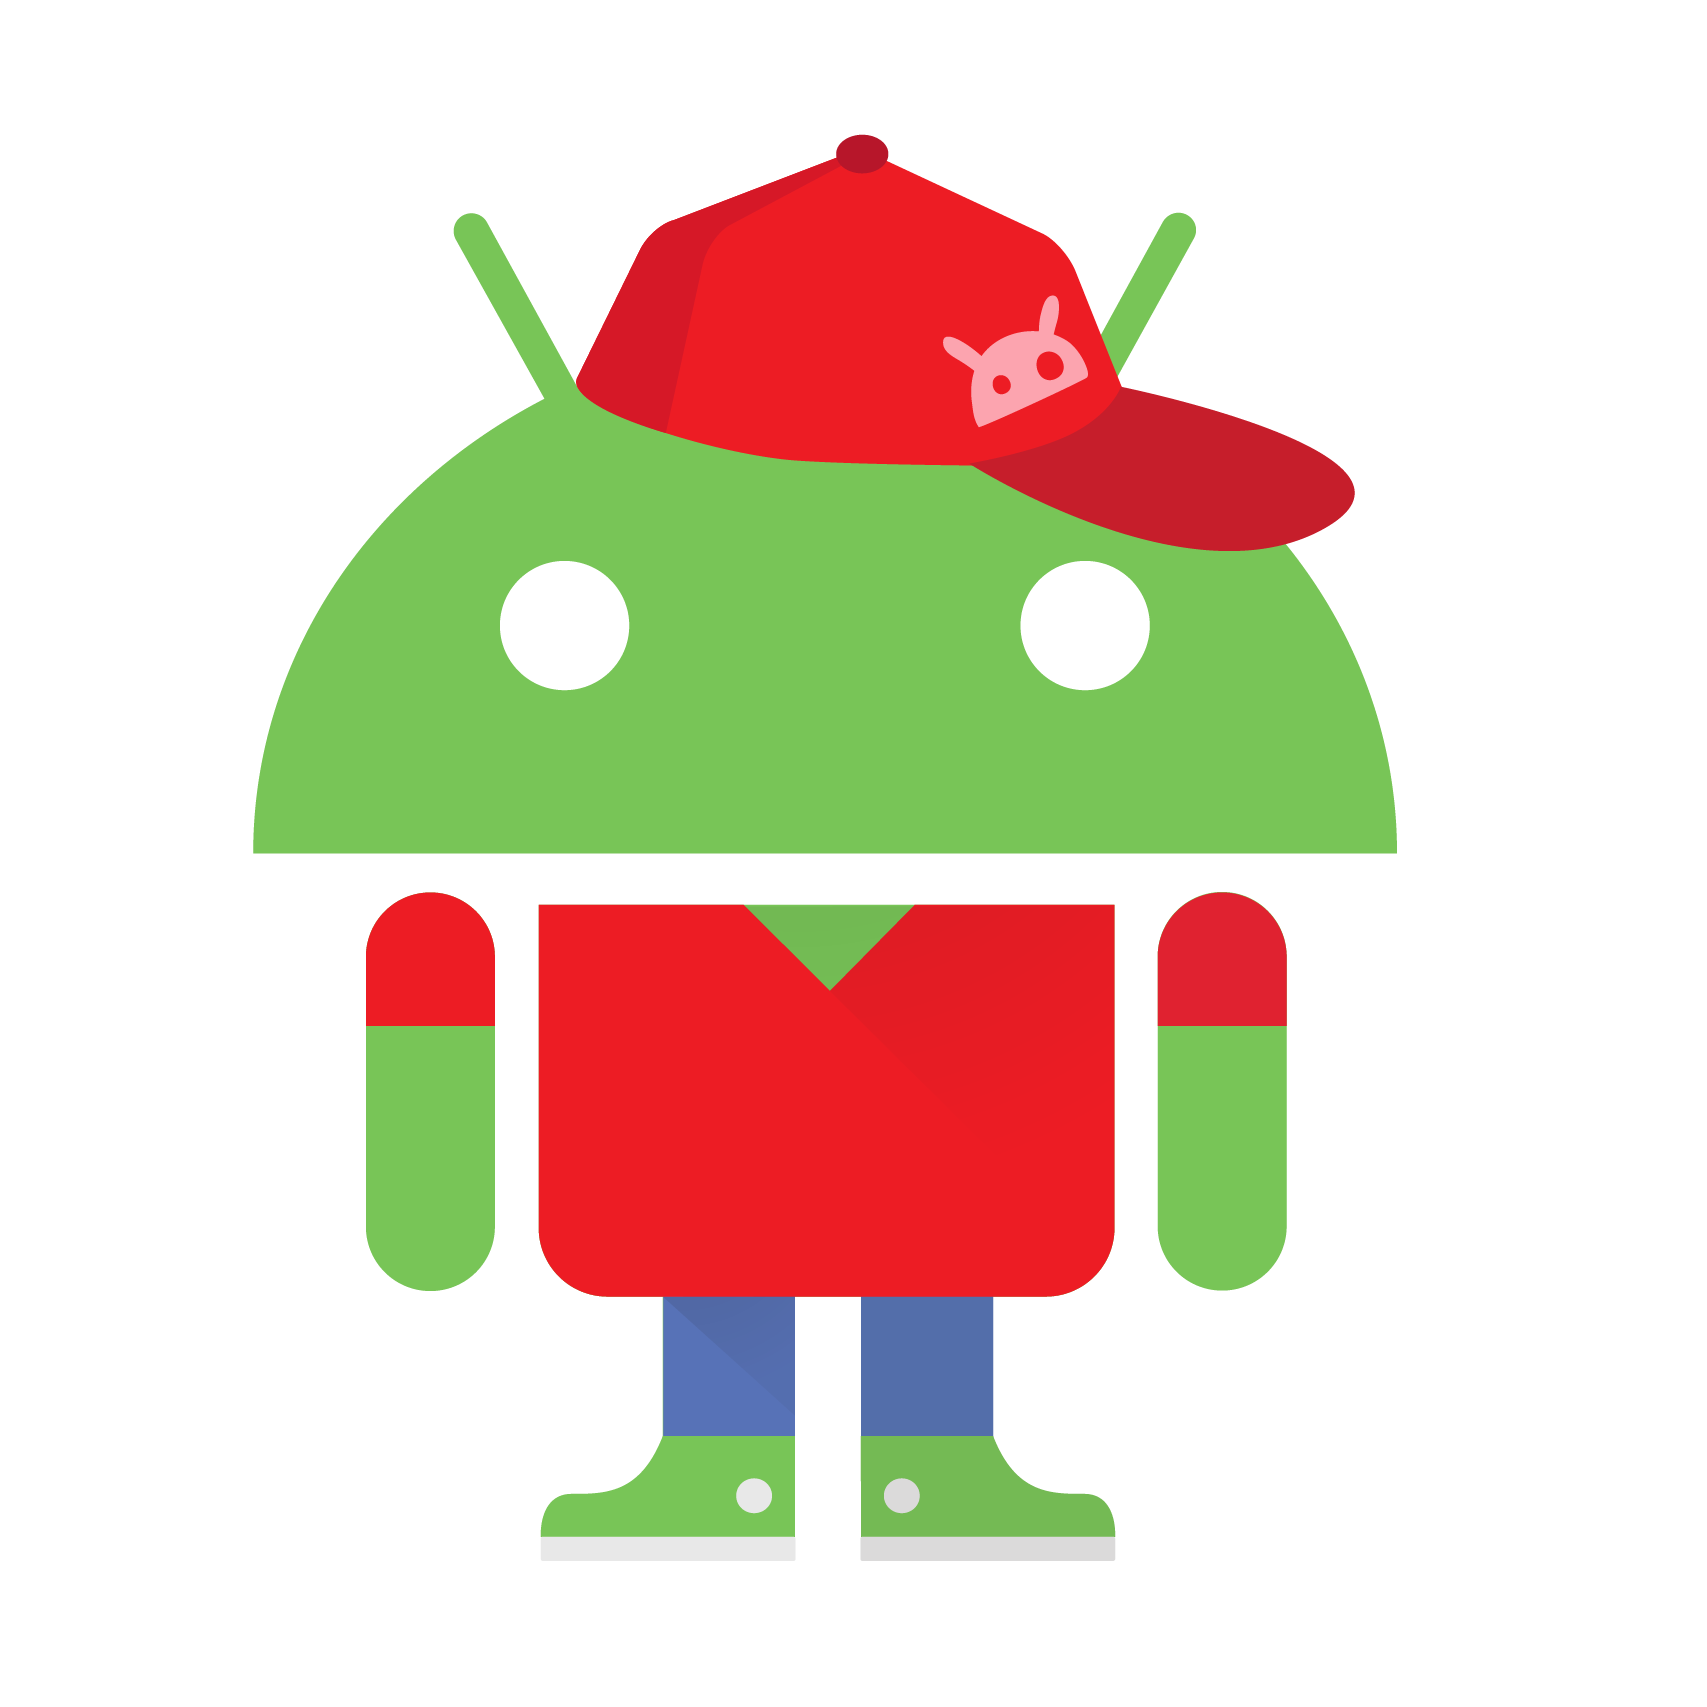 Play Android Google Avatar Download Free Image PNG Image